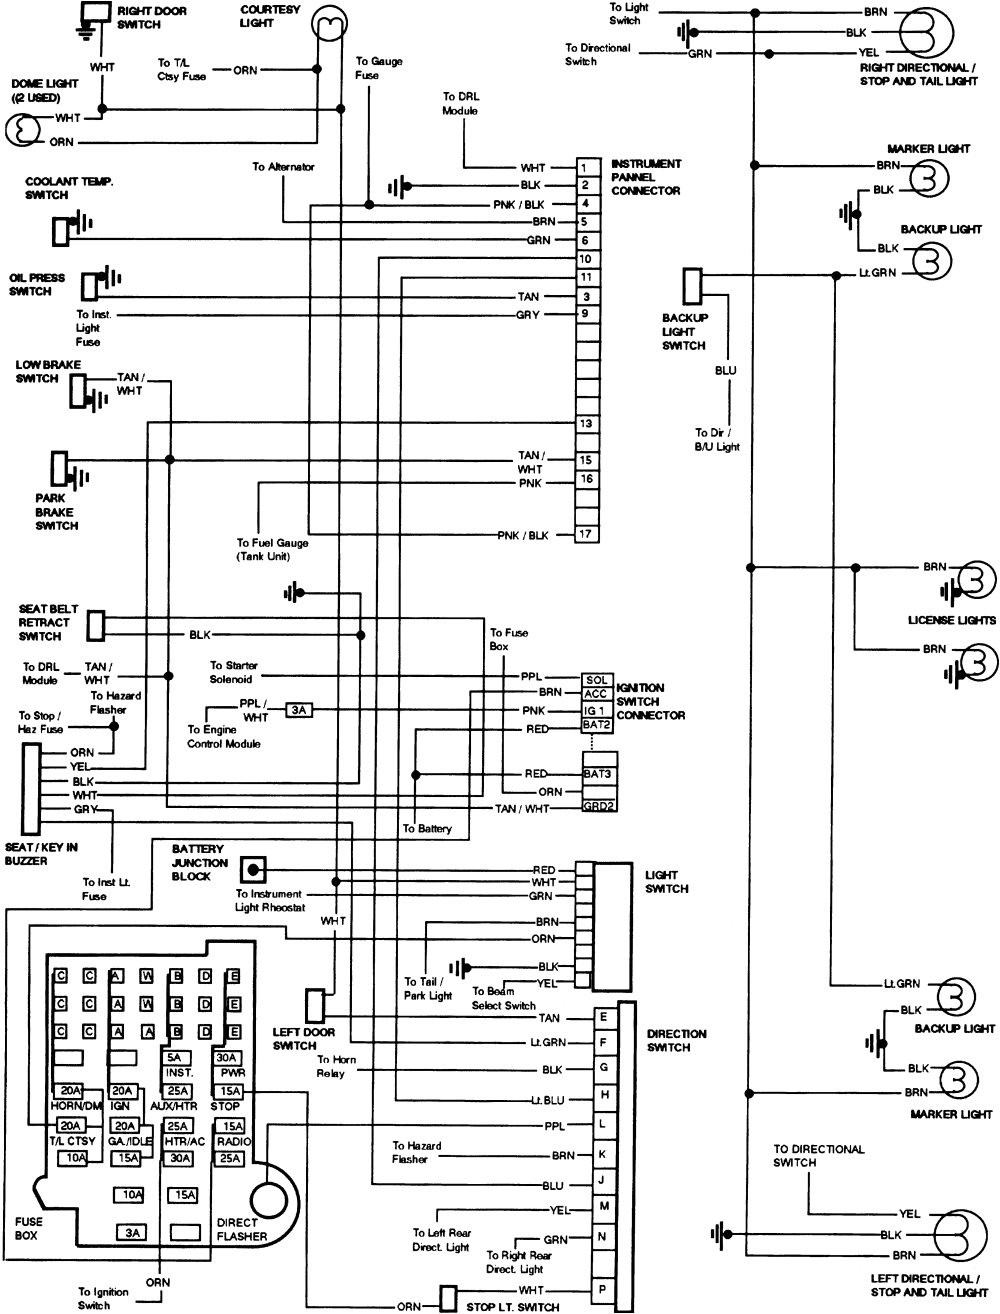 chevy p30 wiring diagram